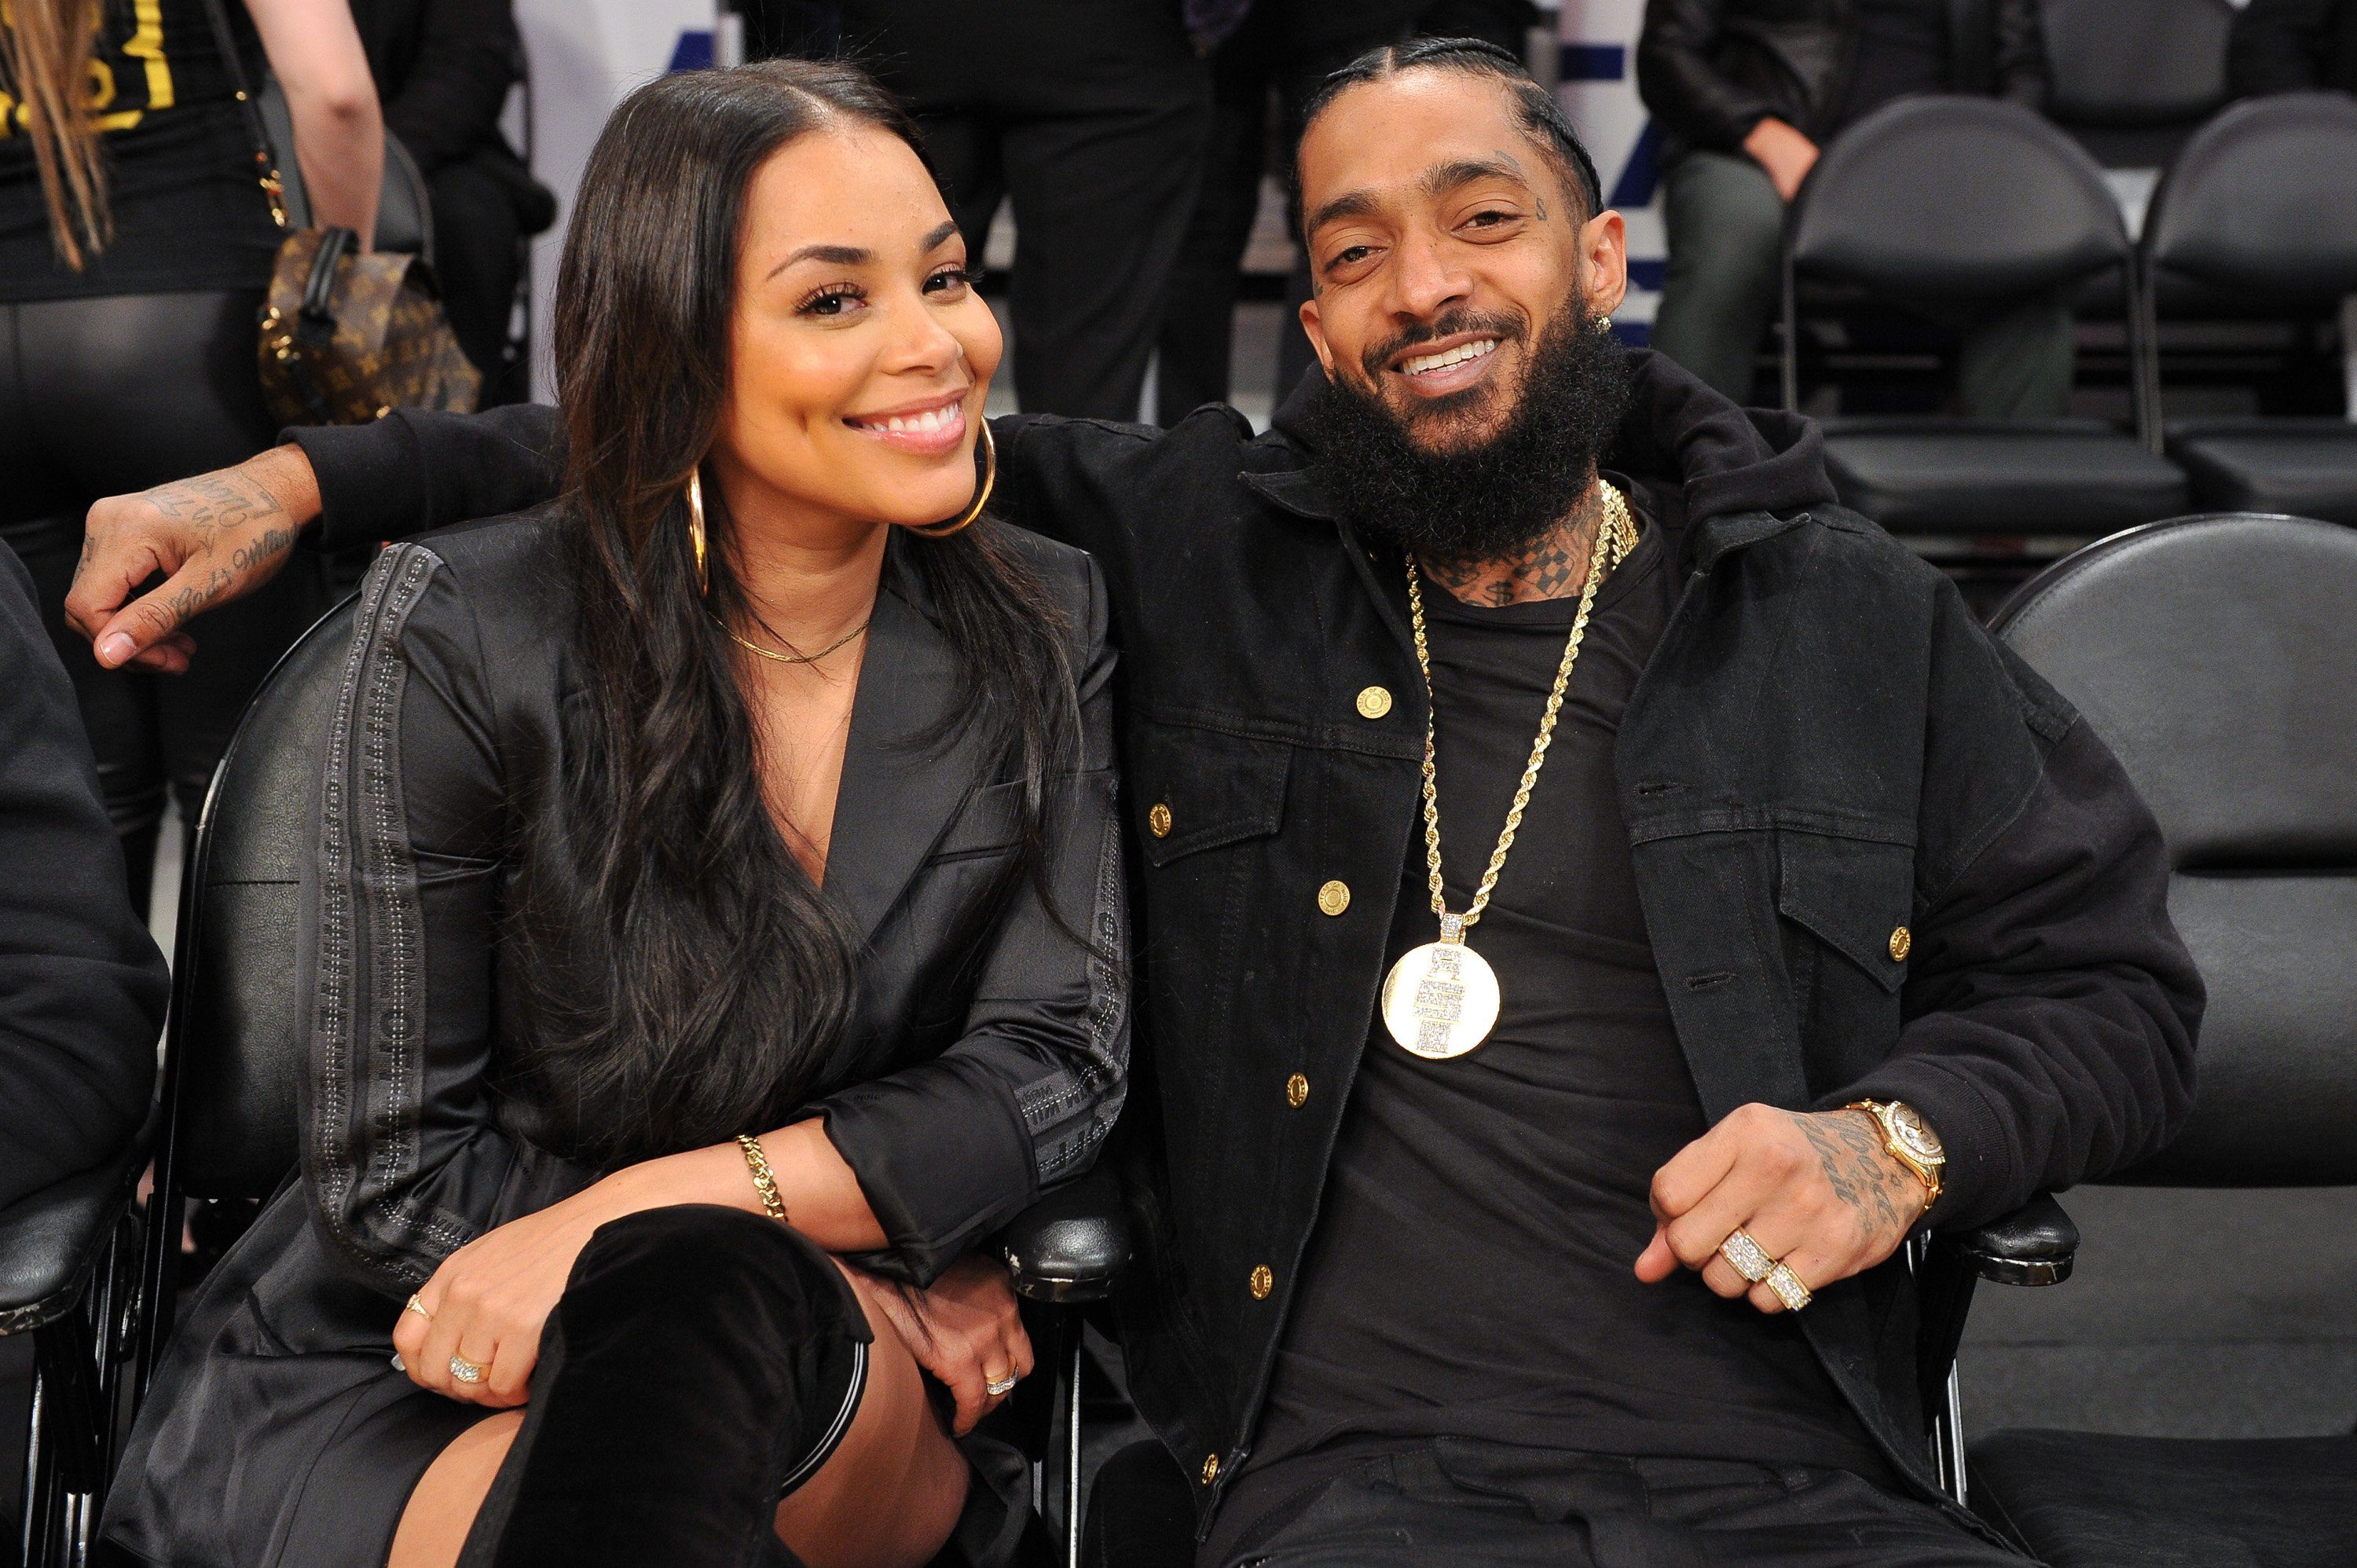 Nipsey Hussle and Lauren London attend a basketball game at Staples Center on November 14, 2018 in Los Angeles, California. | Source: Getty Images